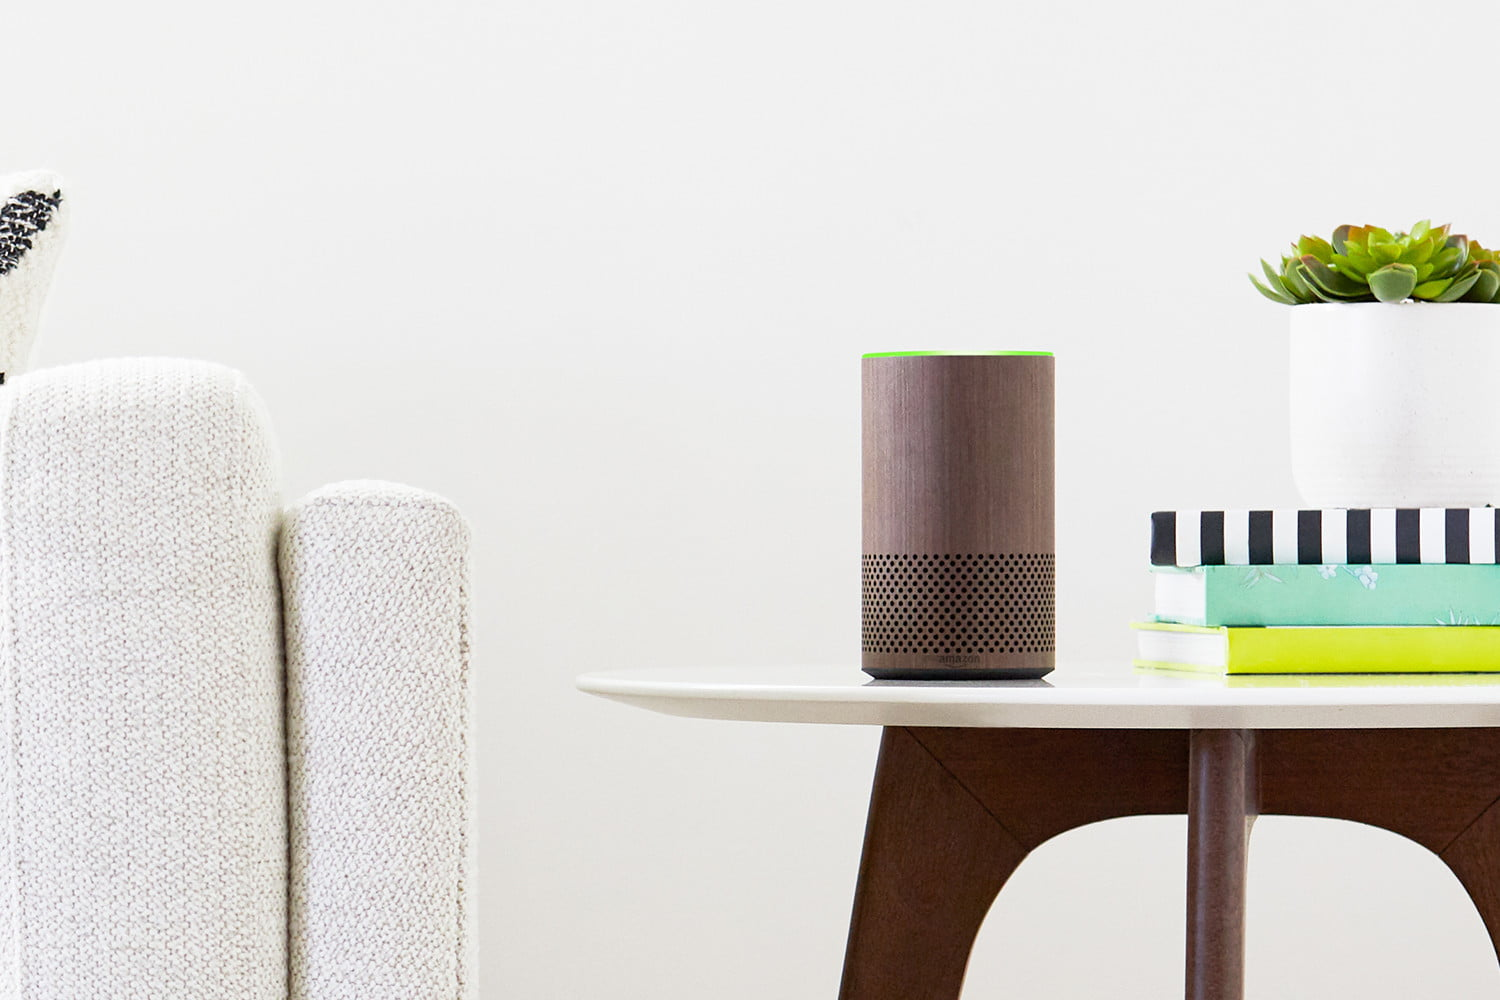 How to connect your smart home gadgets with Amazon Alexa | Digital